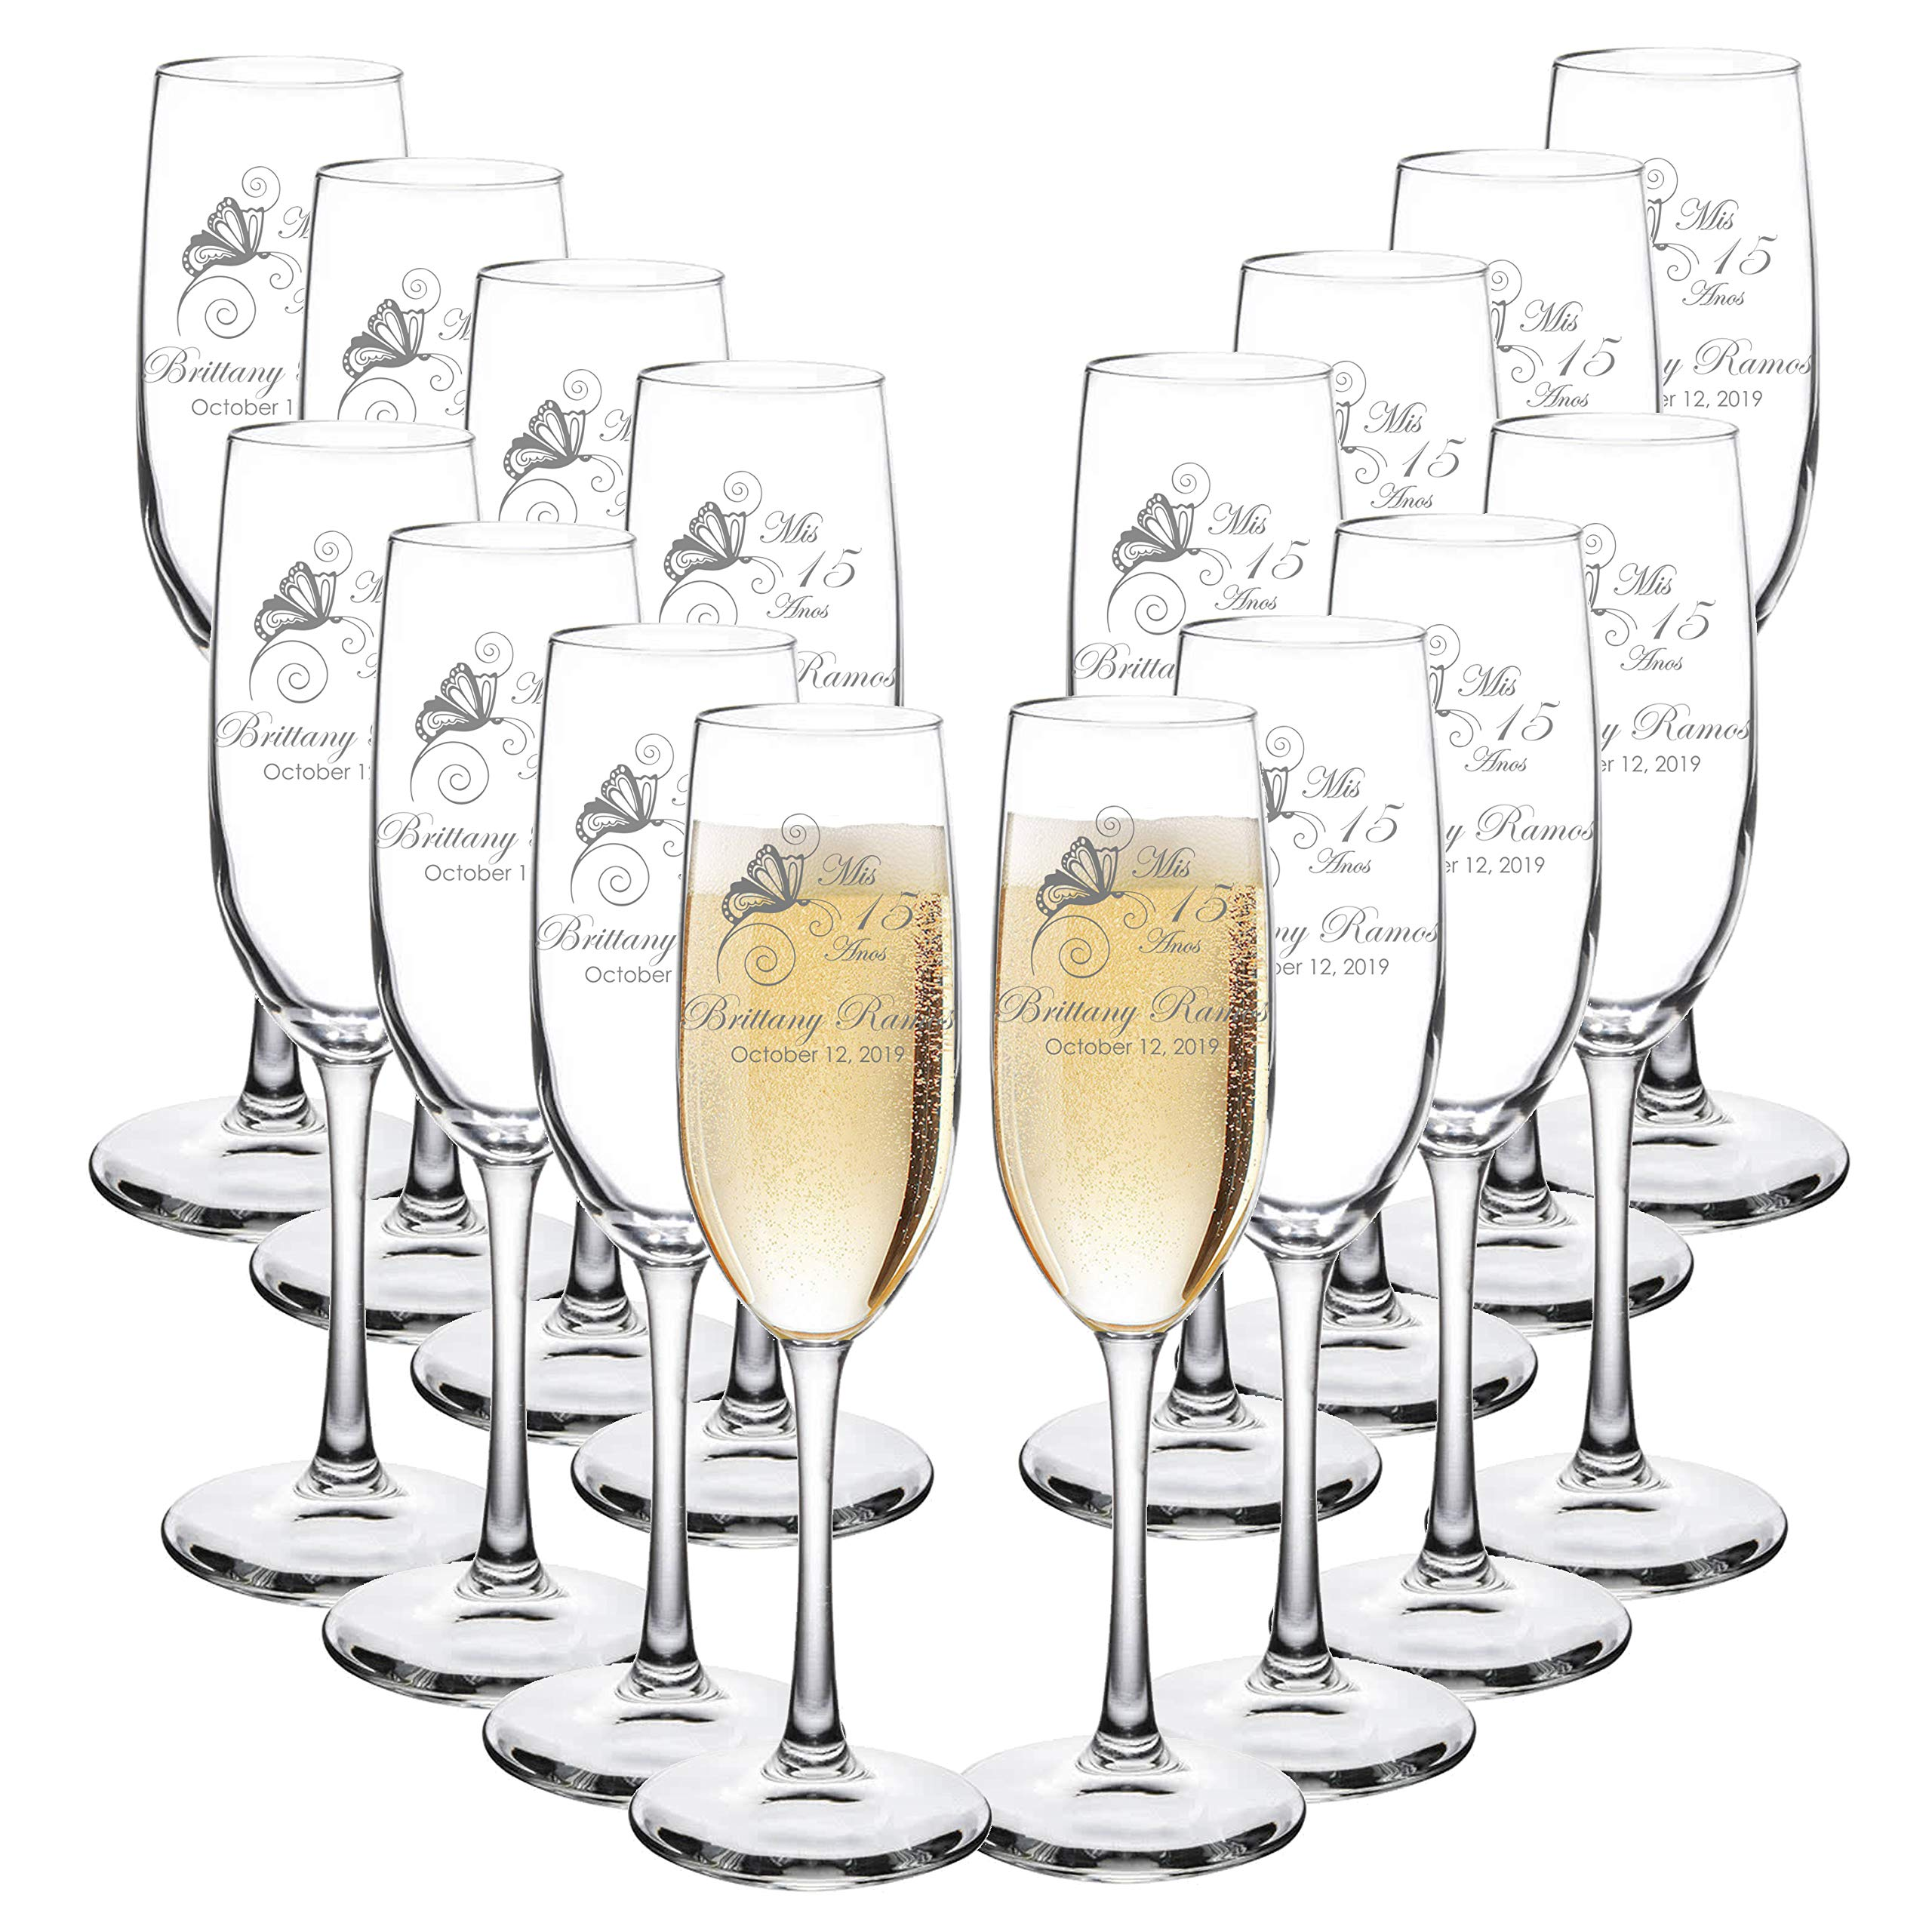 Custom Engraved Quinceanera Cotillion or Debutante Champagne Flutes - Butterfly Design - Choose Set of 2 or 16 - Laser Engraved with Name and Date (Set of 16)